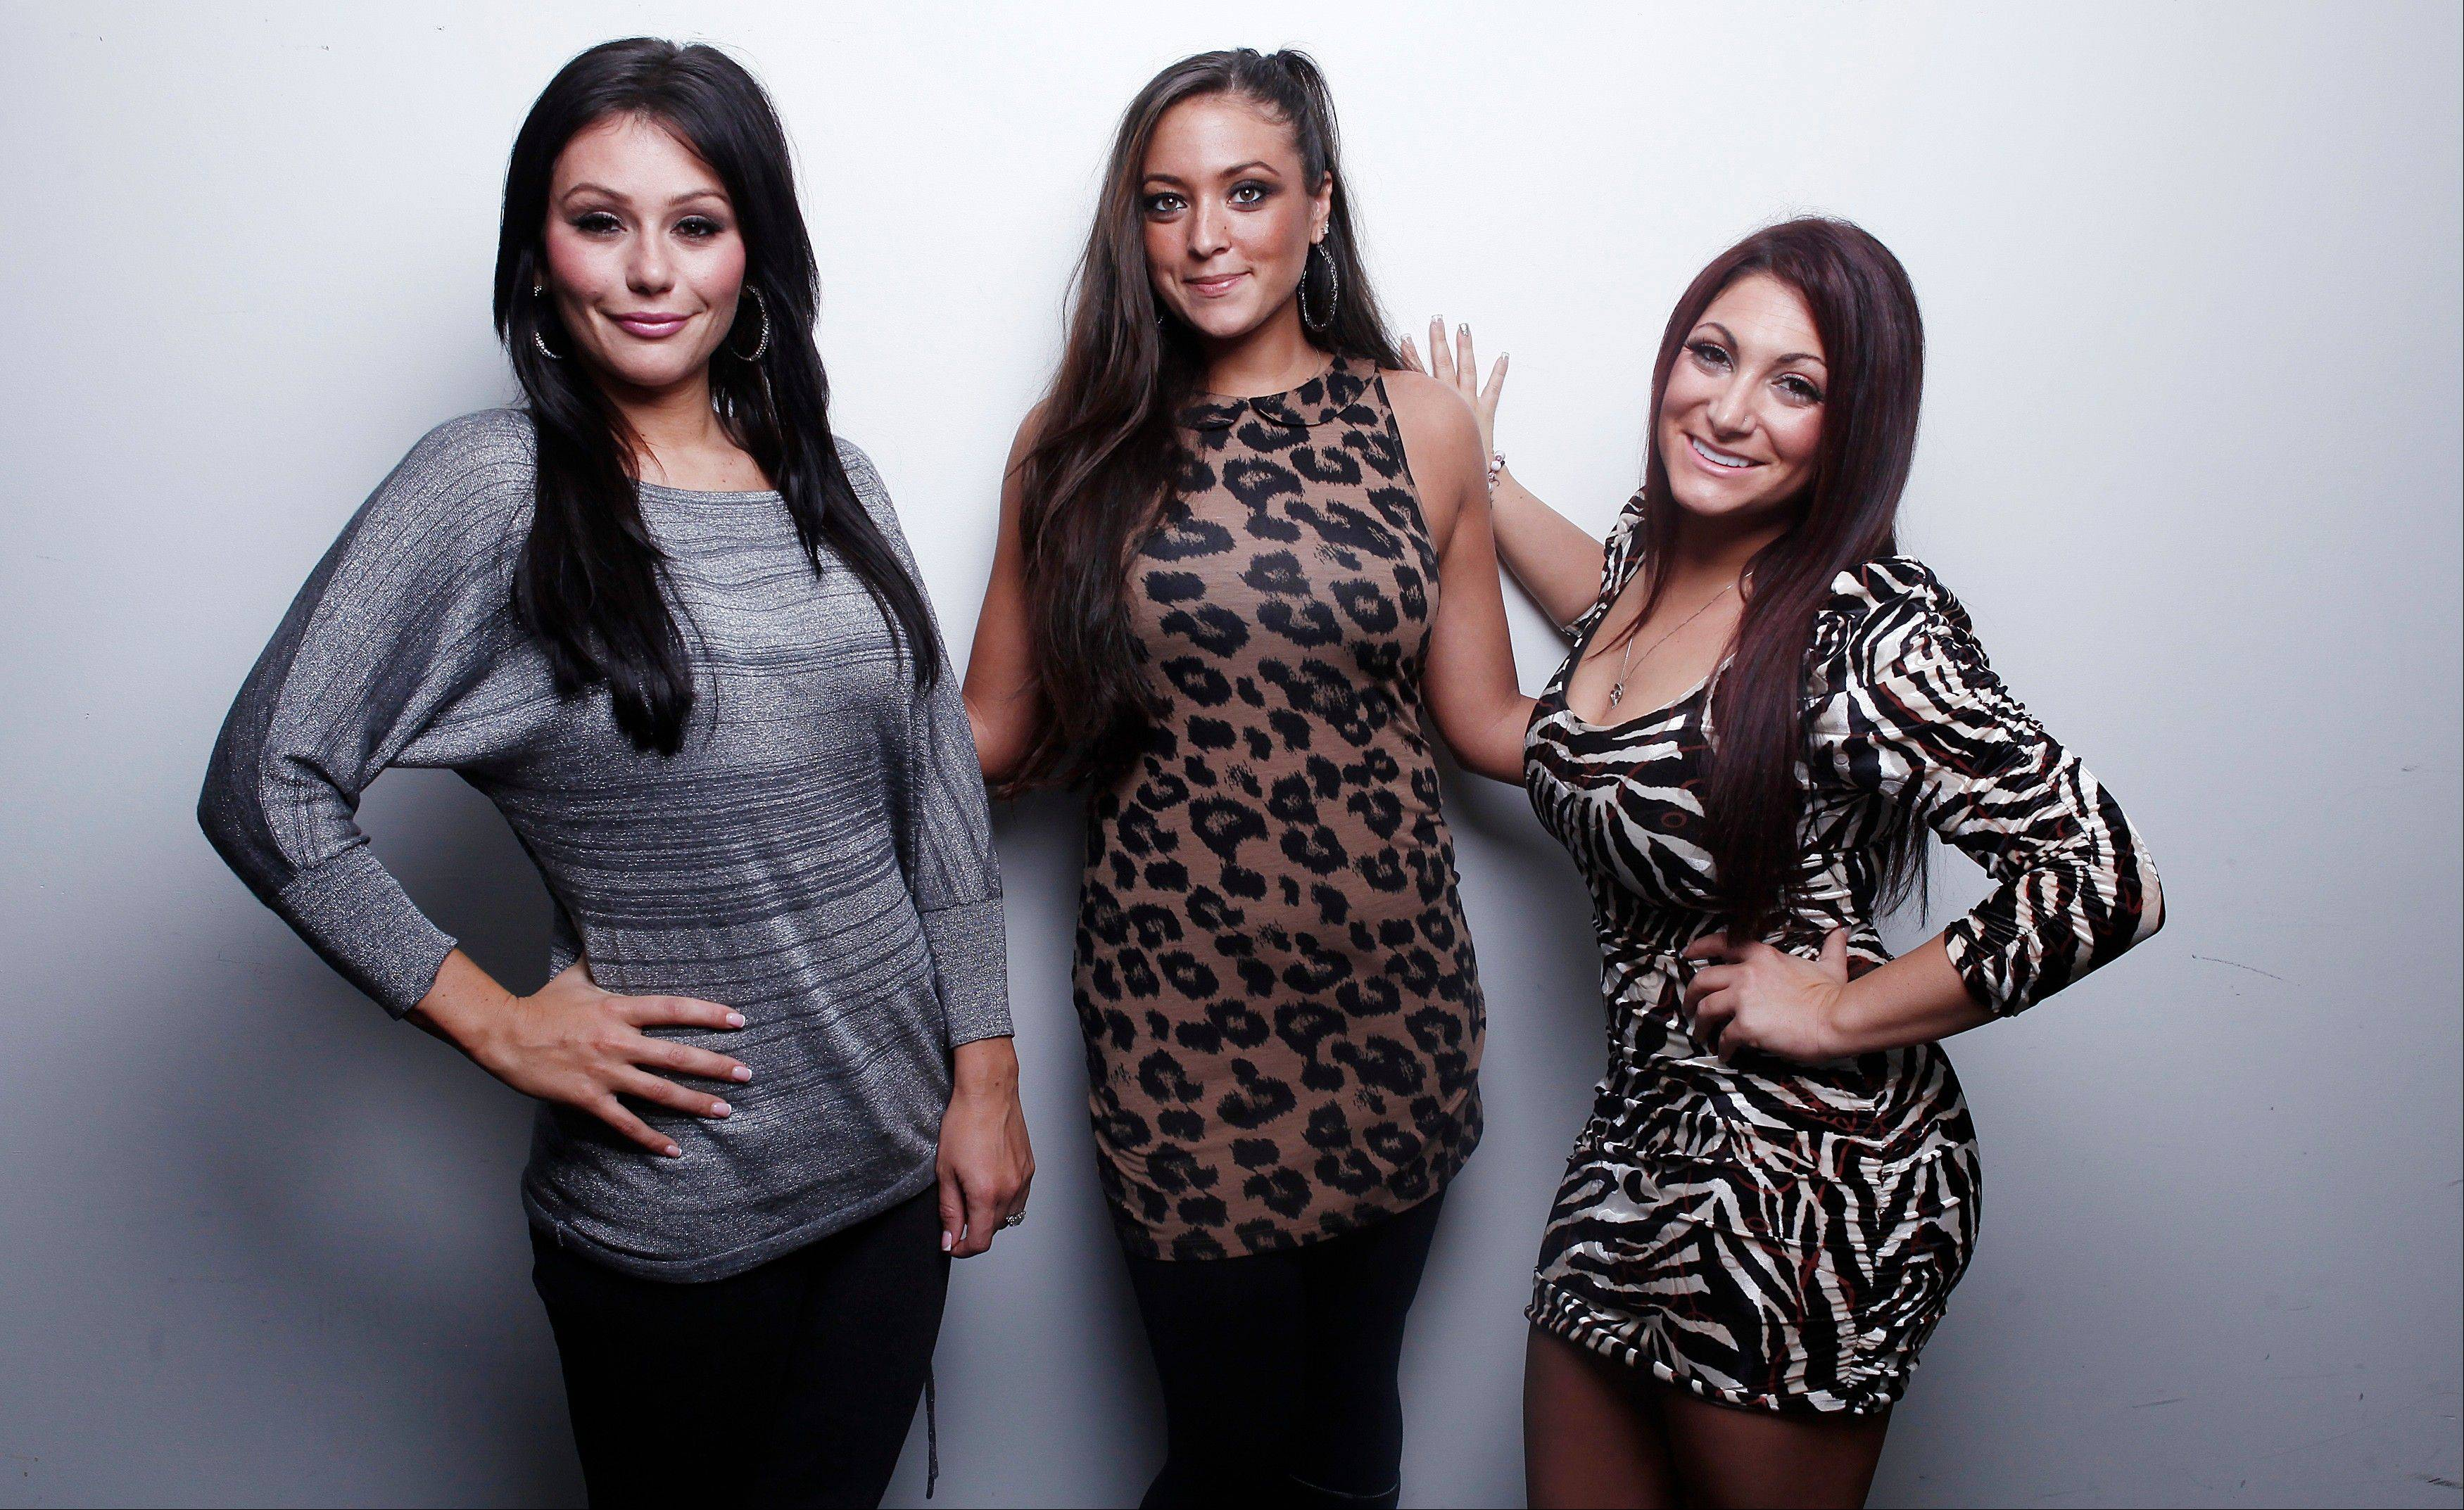 With the last season of MTV�s �Jersey Shore� premiering Thursday, Jenni �JWOW� Farley, left, Sammi �Sweetheart� Giancola and Deena Cortese are looking forward to the future.